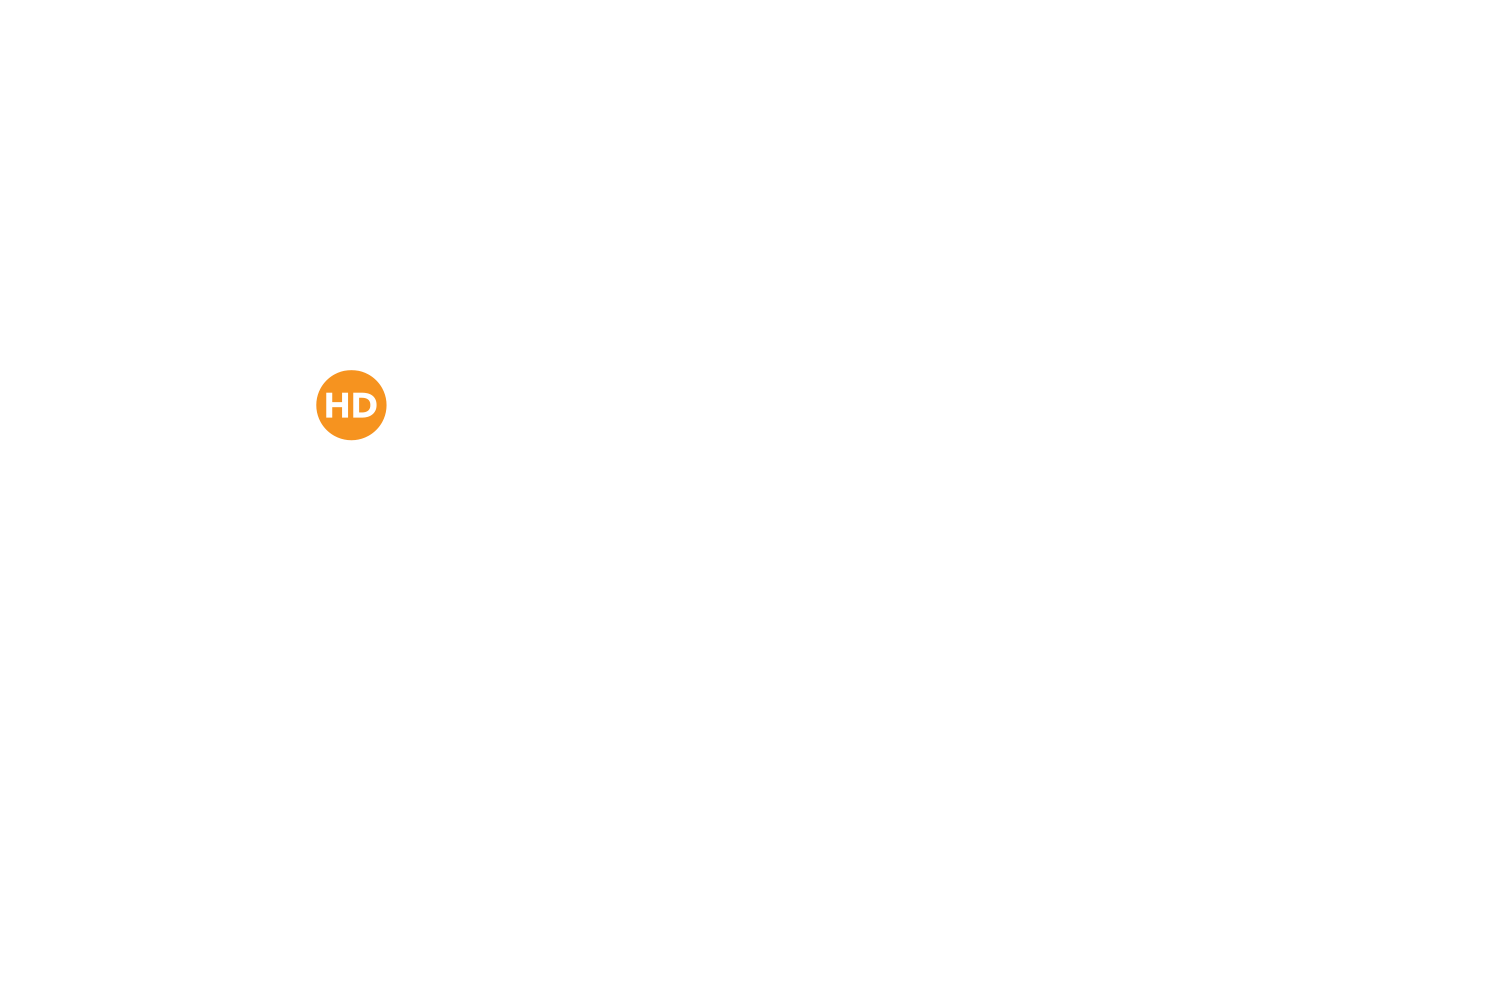 Chiquilines